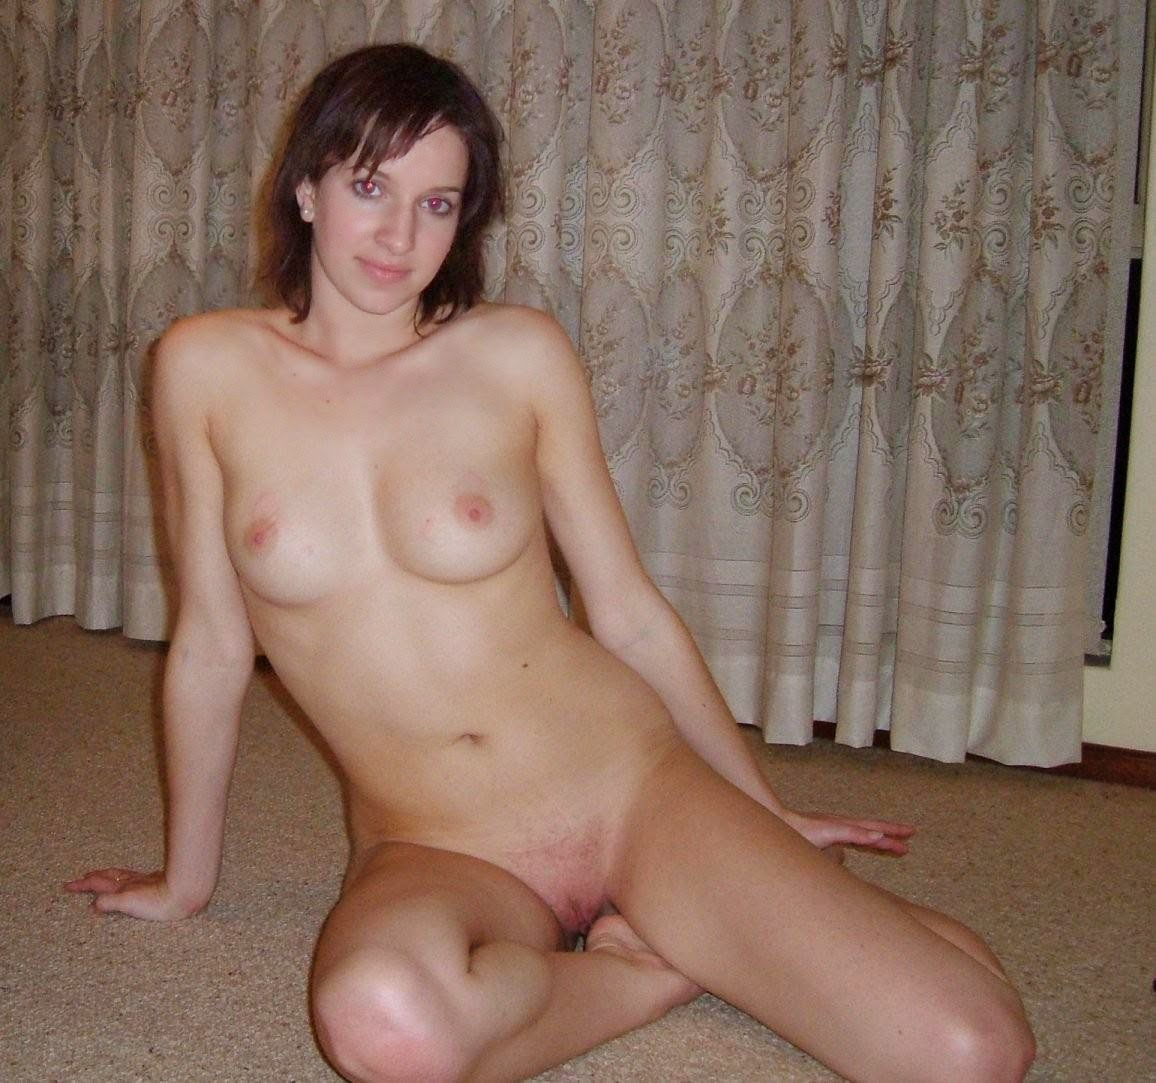 Russian amateur wives nude remarkable, the